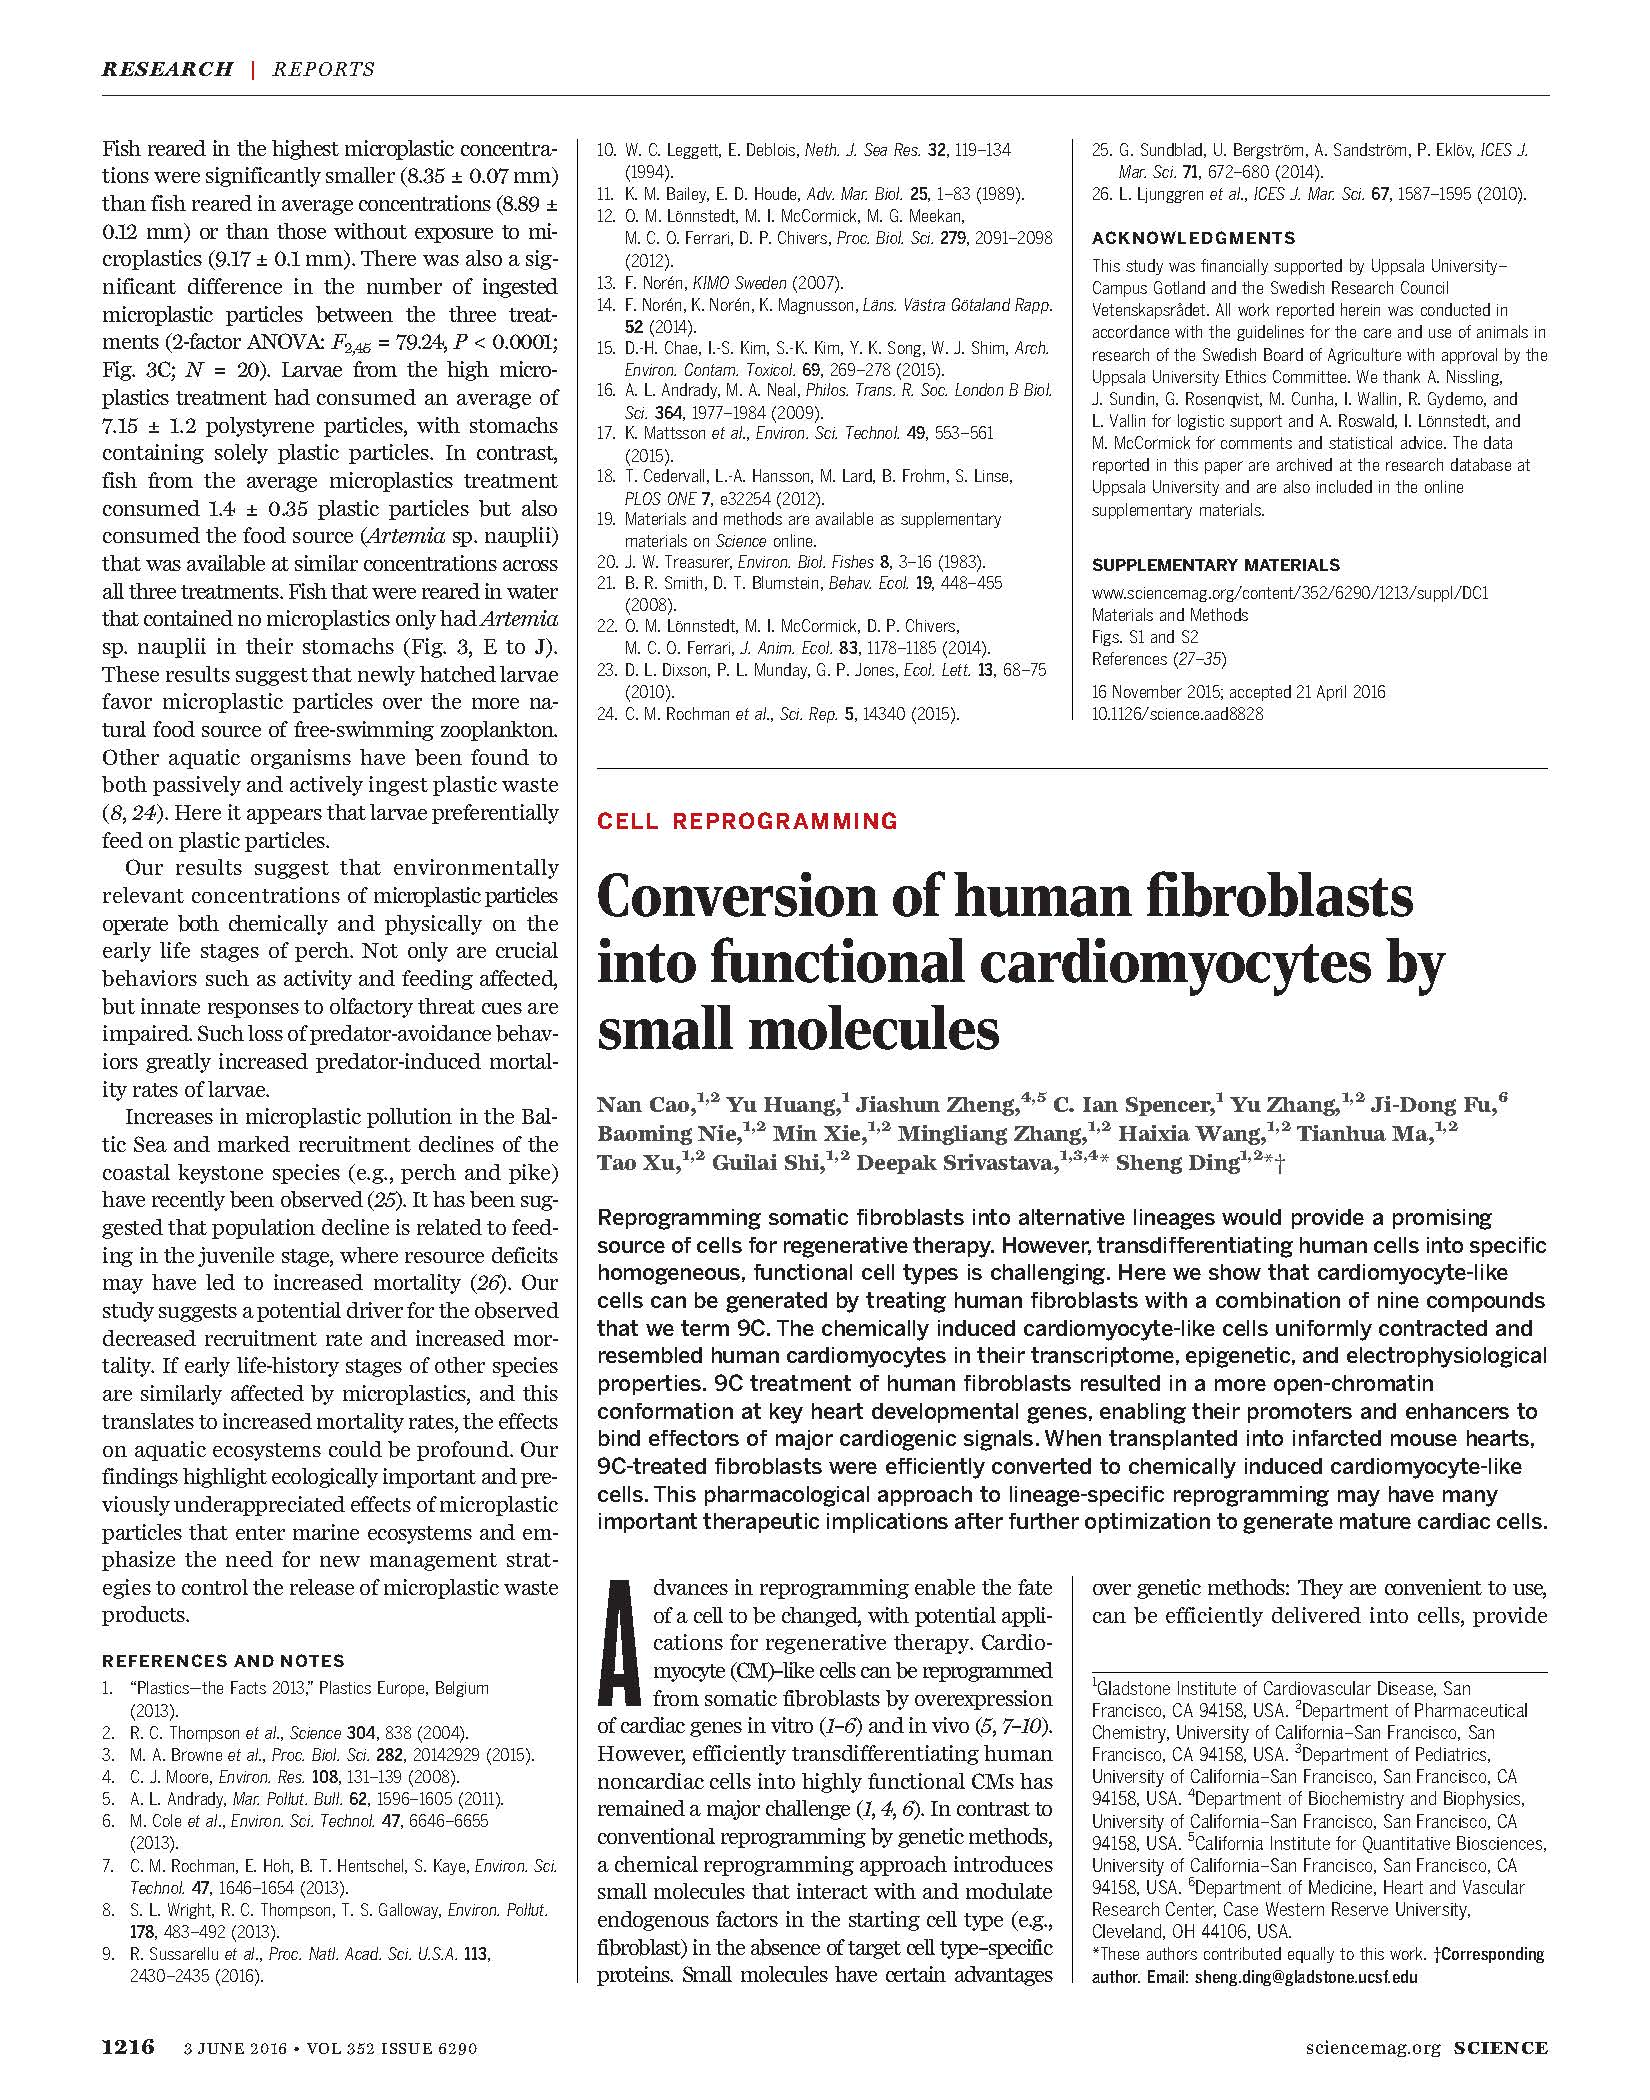 Conversion-of-human-fibroblasts-into-functional-cardiomyocytes-by-small-molecules-1.jpg